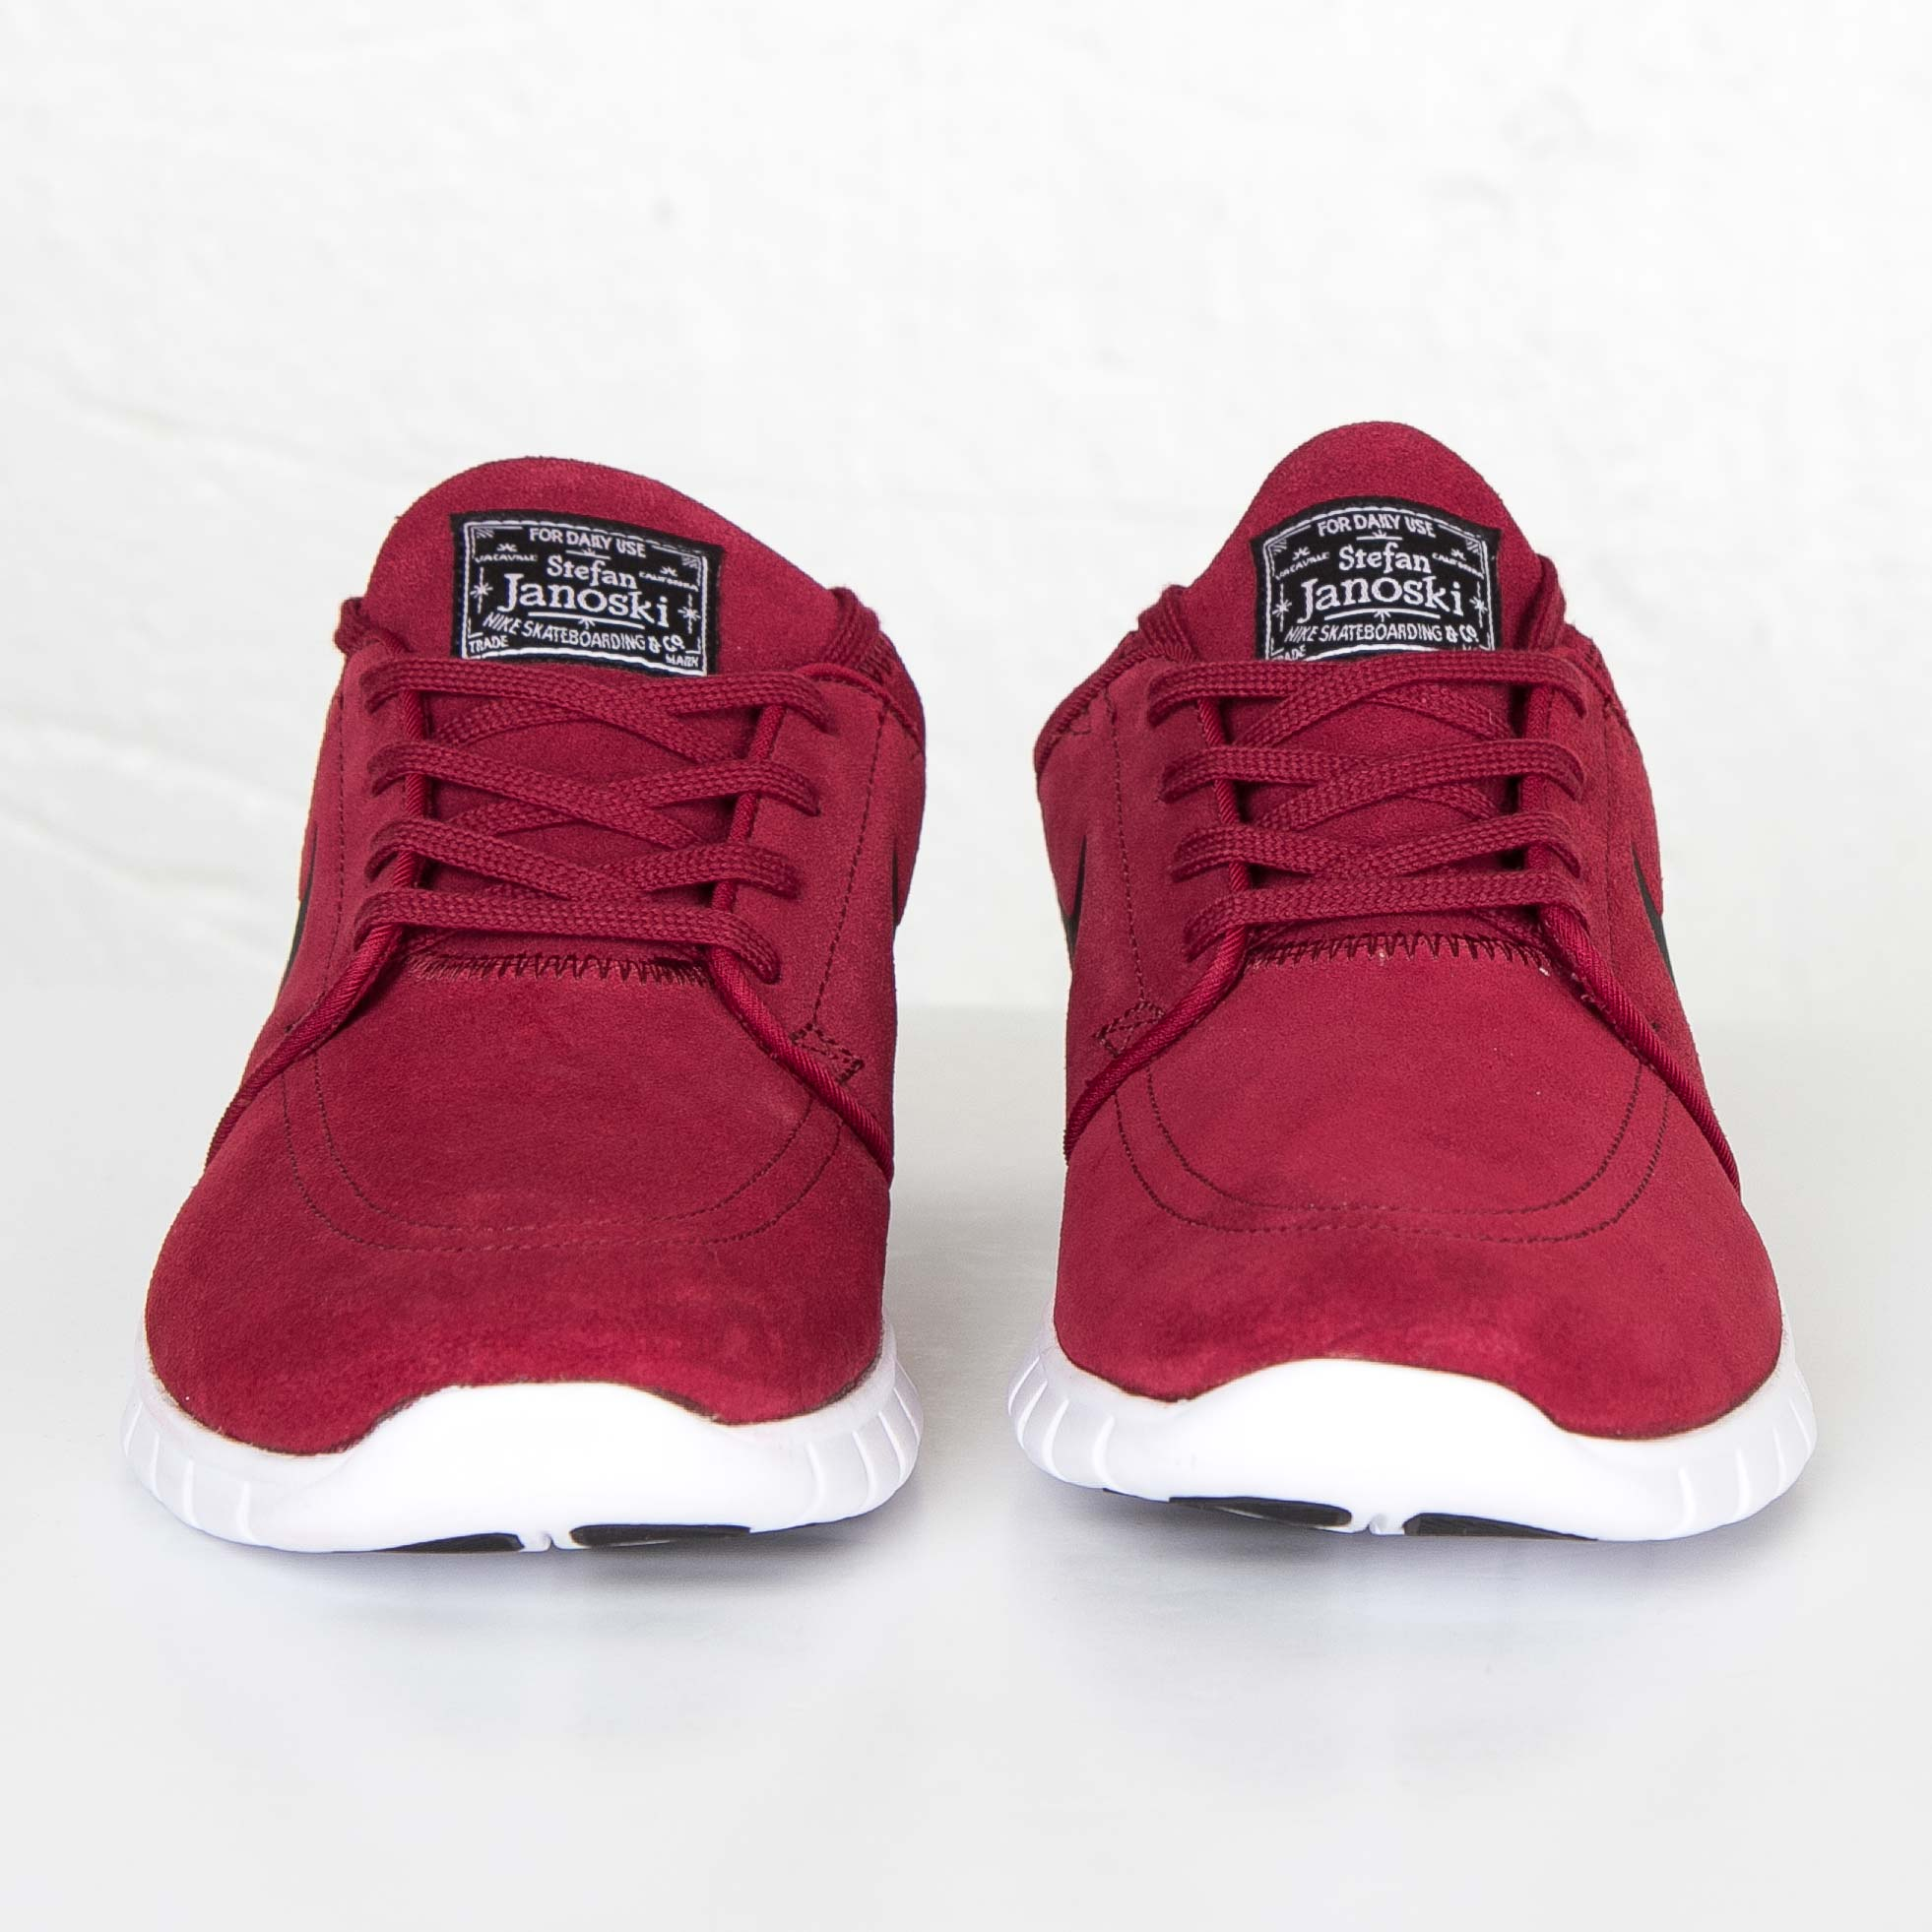 save up to 80% skate shoes cheap for sale Nike Stefan Janoski Max Suede - 685299-601 - Sneakersnstuff ...